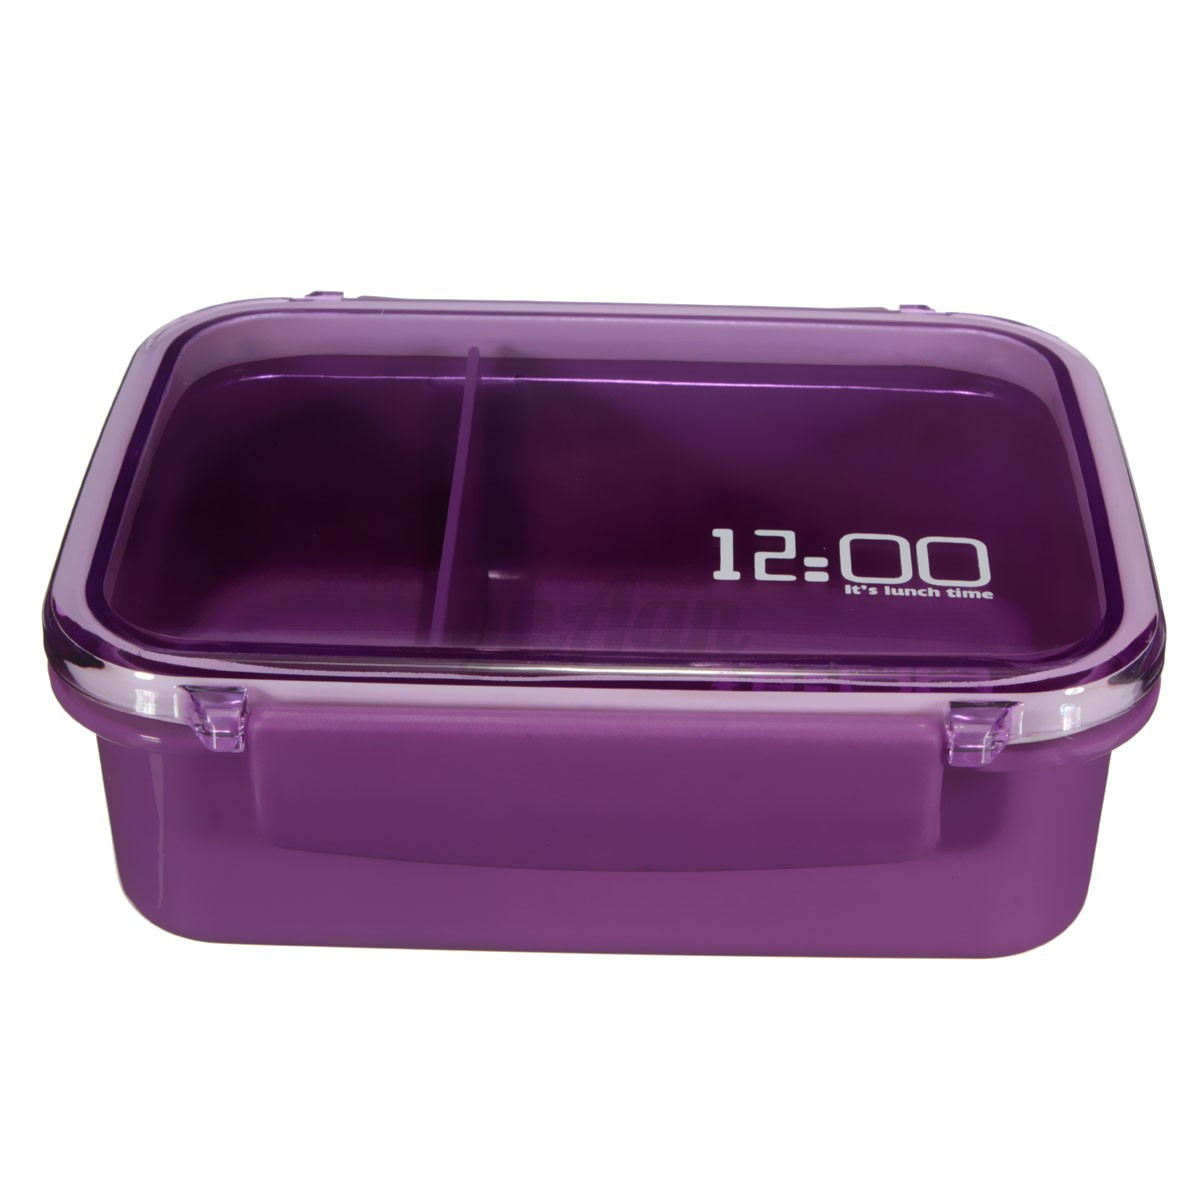 portable microwave plastic bento lunch box picnic food meal container storage ebay. Black Bedroom Furniture Sets. Home Design Ideas